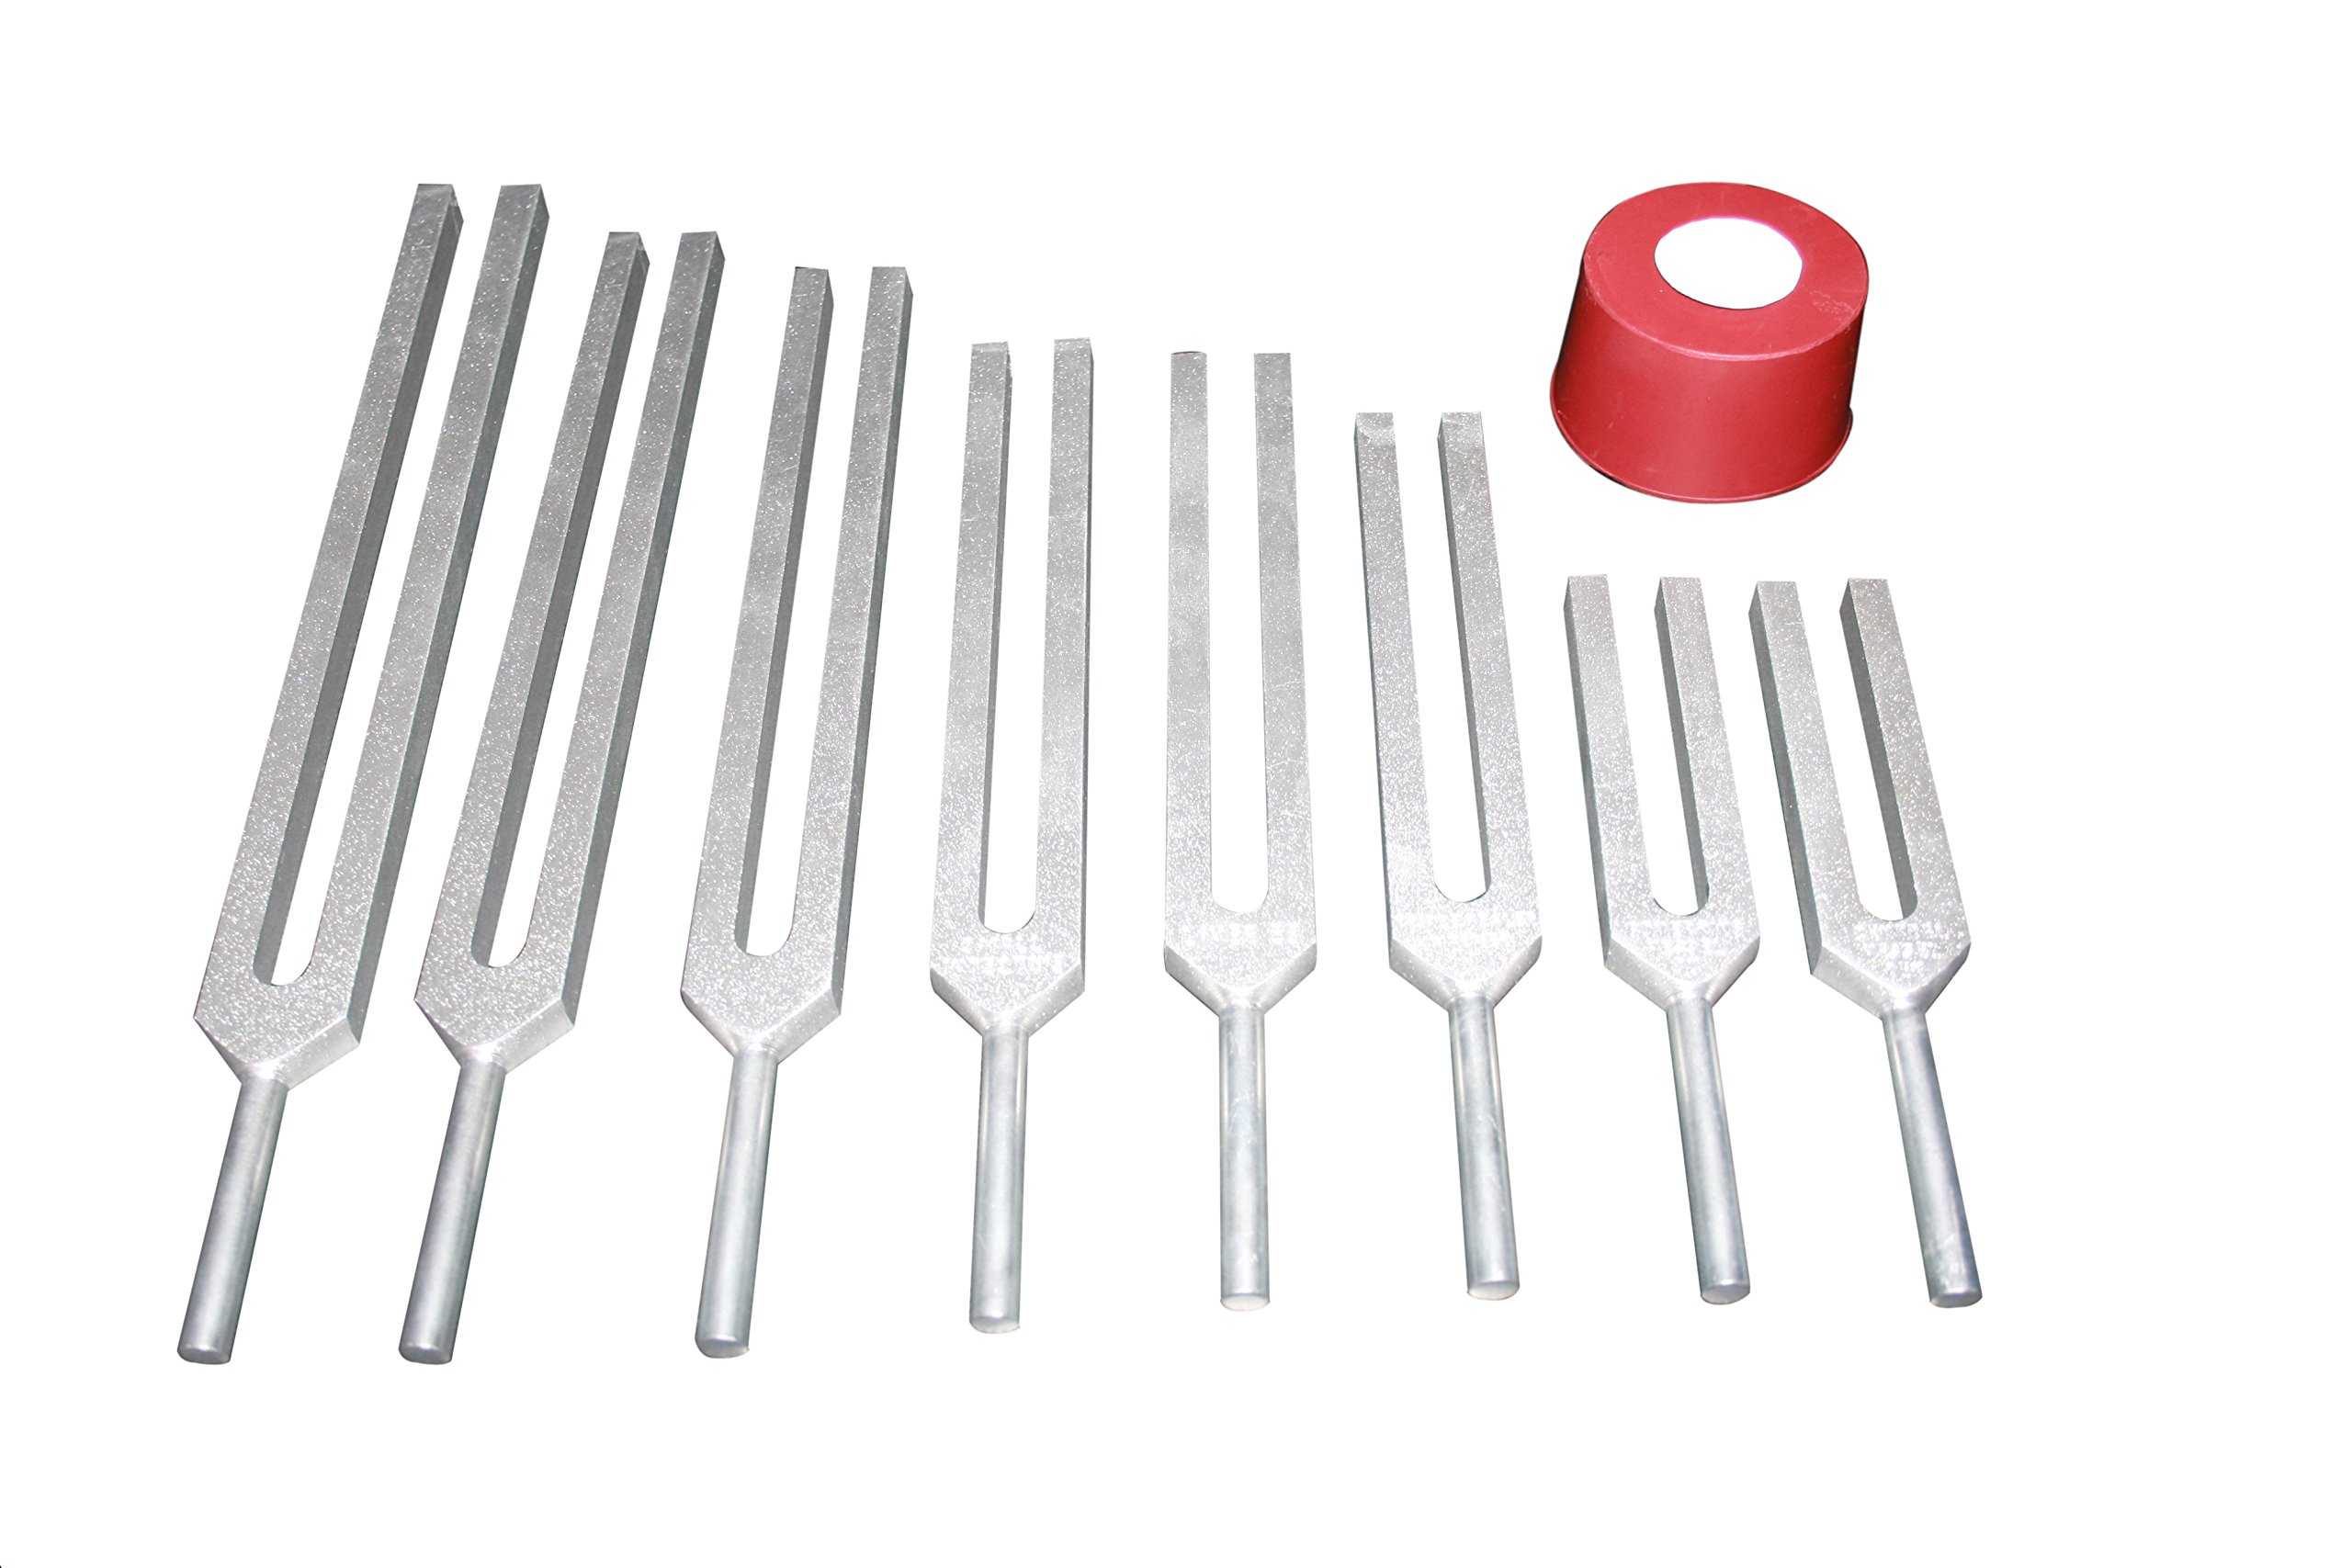 Radical Harmonic Solar Spectrum Set of 8 Healing Tuning forks with activator and pouch